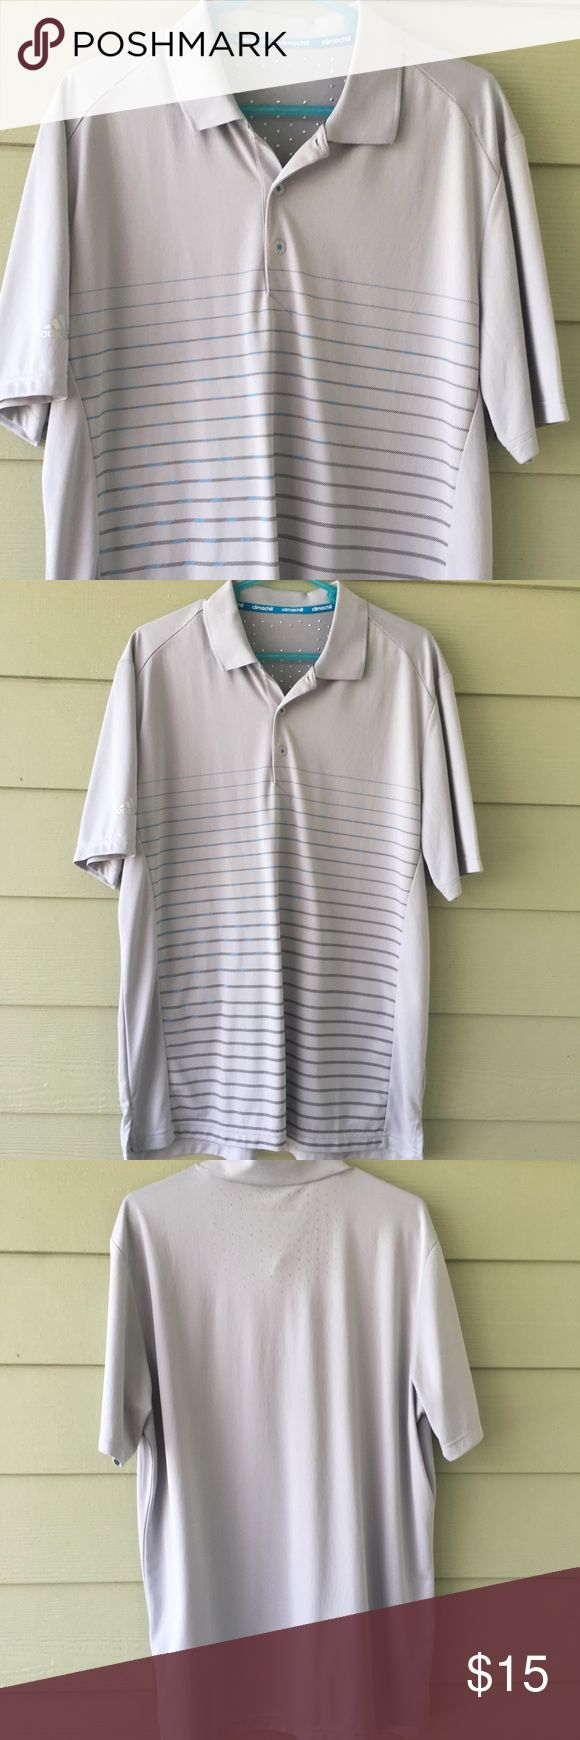 Men's Adidas golf shirt Climachill technology helps you keep your cool on the golf course! adidas light gray golf shirt. Size XL. Worn once. Adidas Shirts Polos